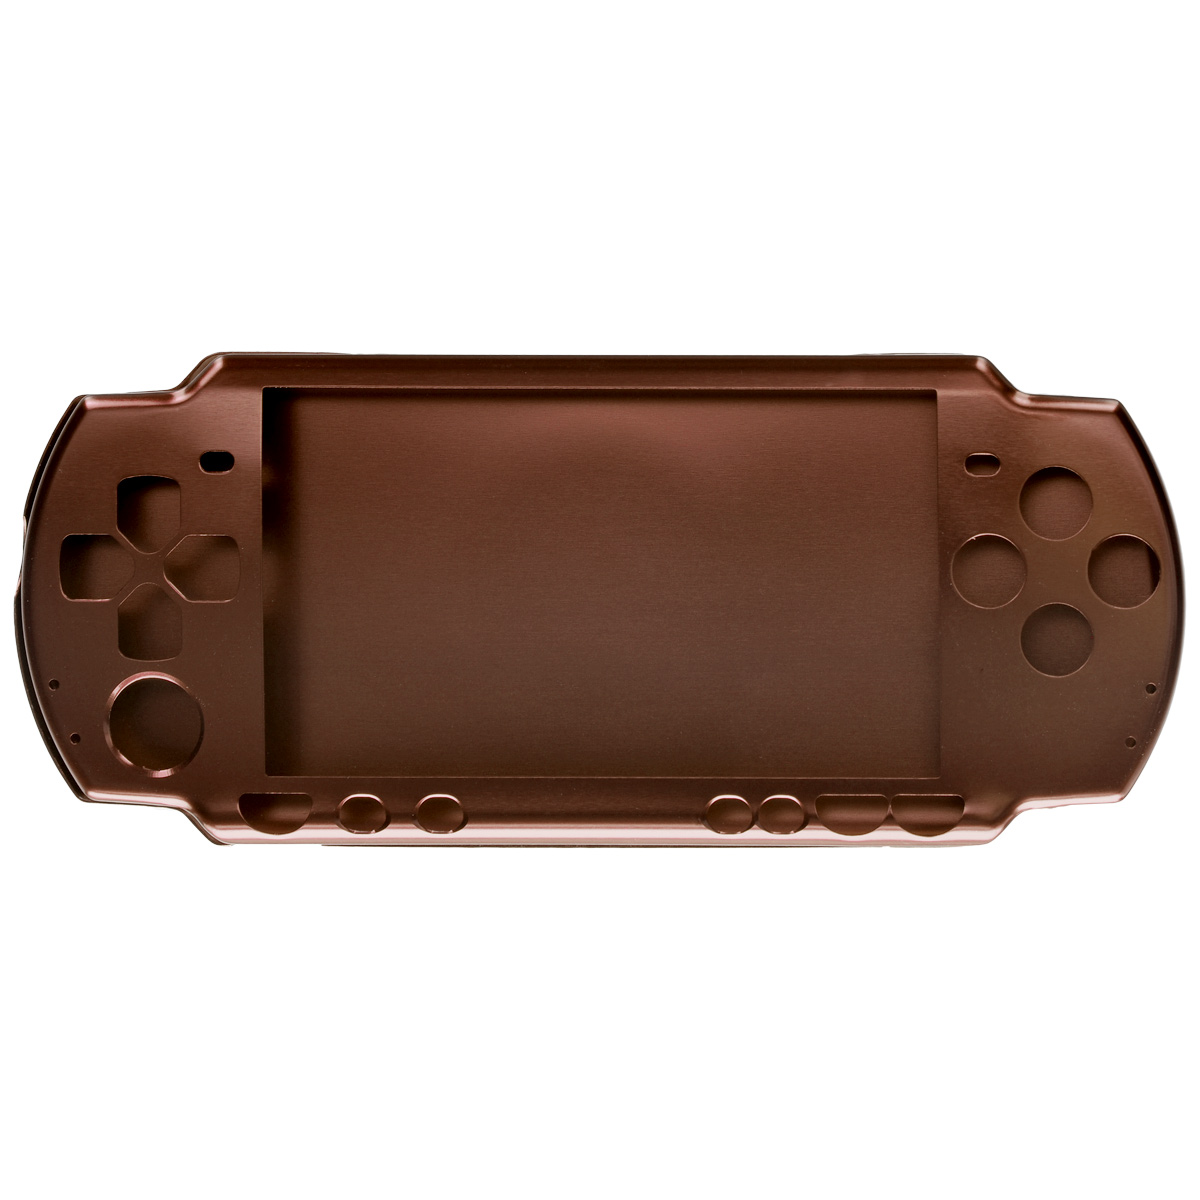 Алюминиевый защитный корпус Game Guru Luxе для Sony PSP 2000/3000 (бронза) repair parts replacement analog stick module for psp 3000 grey